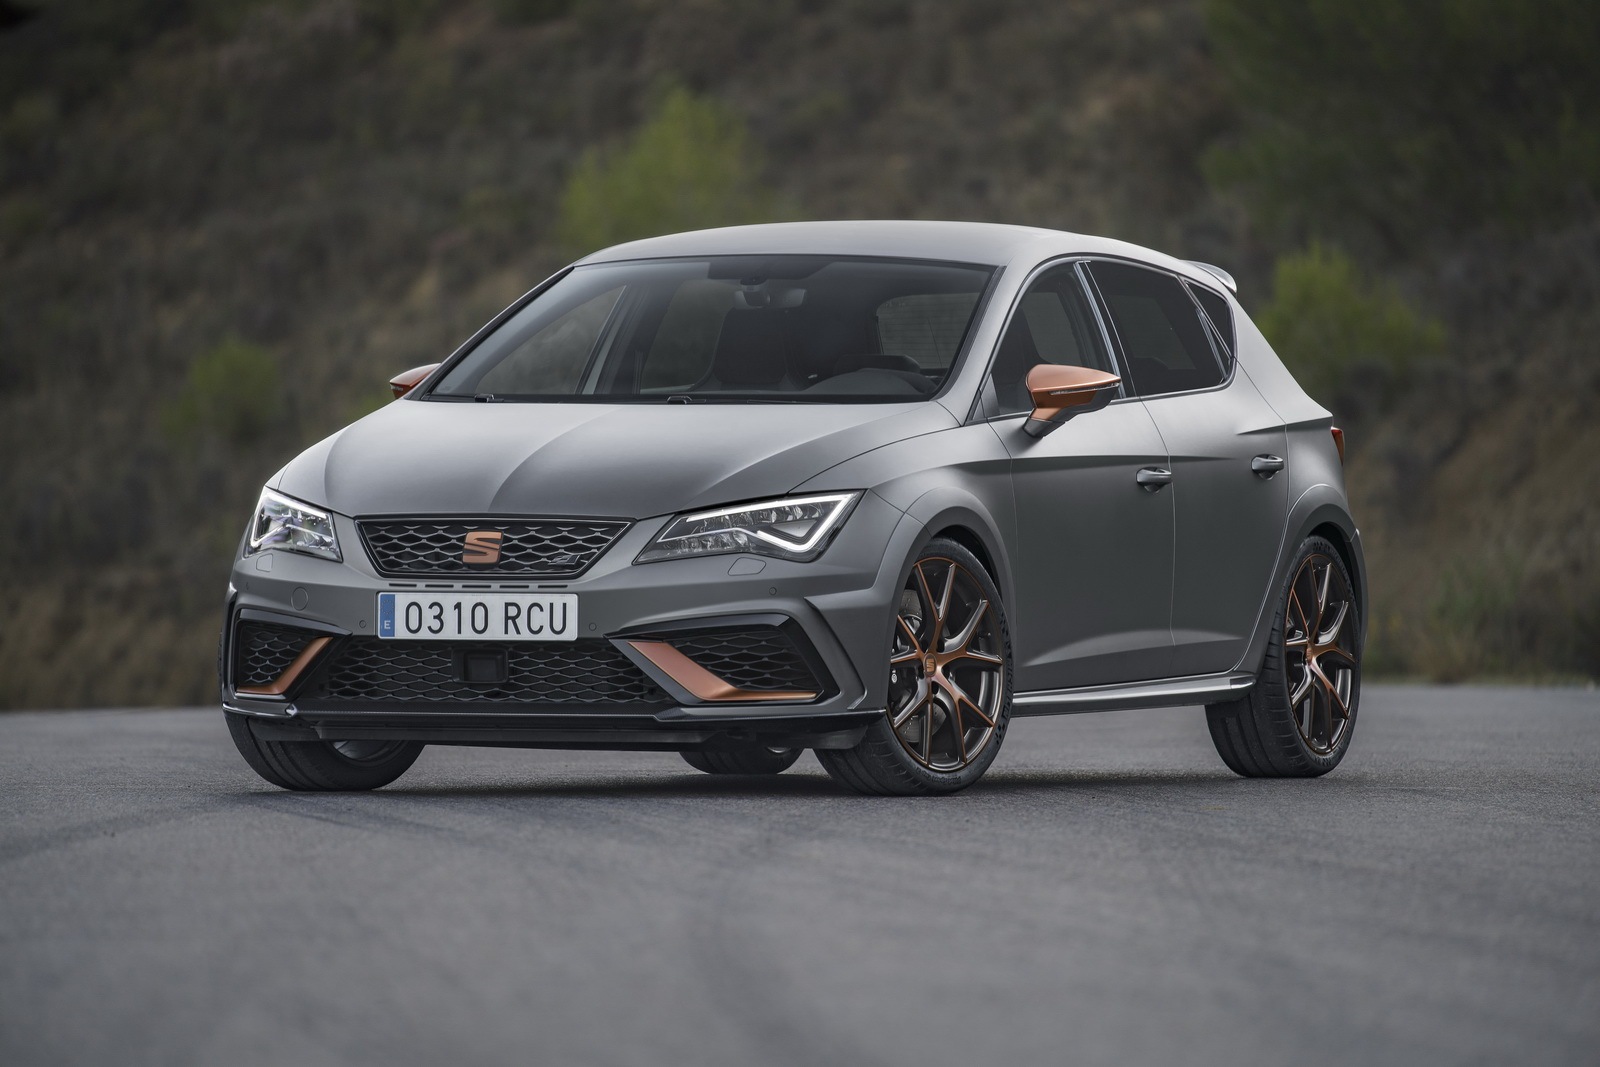 seat leon cupra r detailed in new gallery 43 pics carscoops. Black Bedroom Furniture Sets. Home Design Ideas